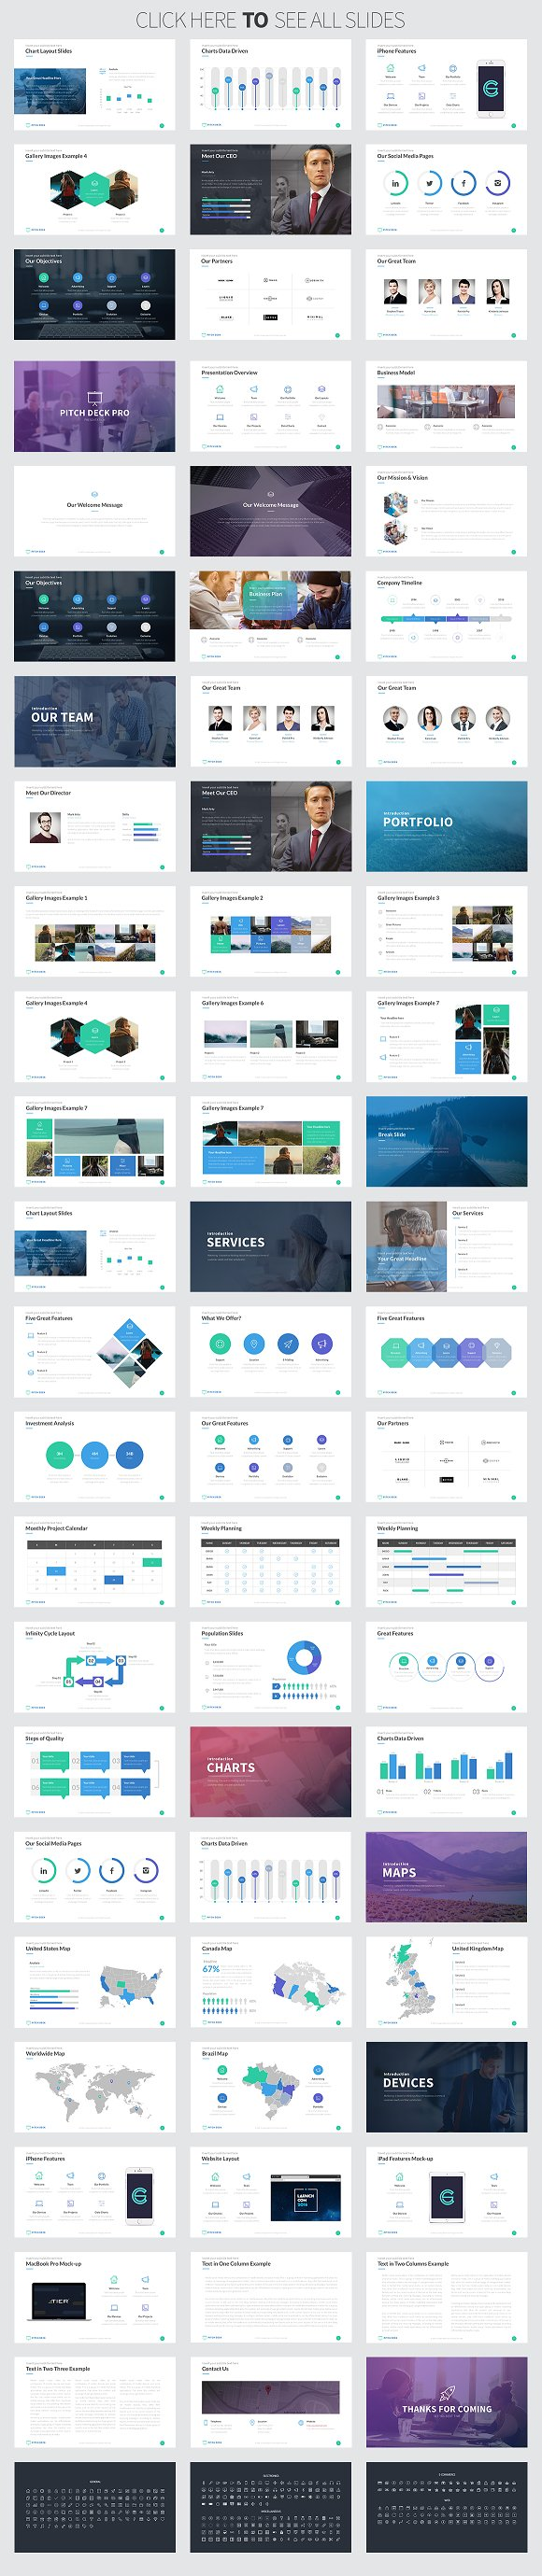 Pitch deck pro keynote template presentation templates creative pitch deck pro keynote template presentation templates creative market flashek Image collections